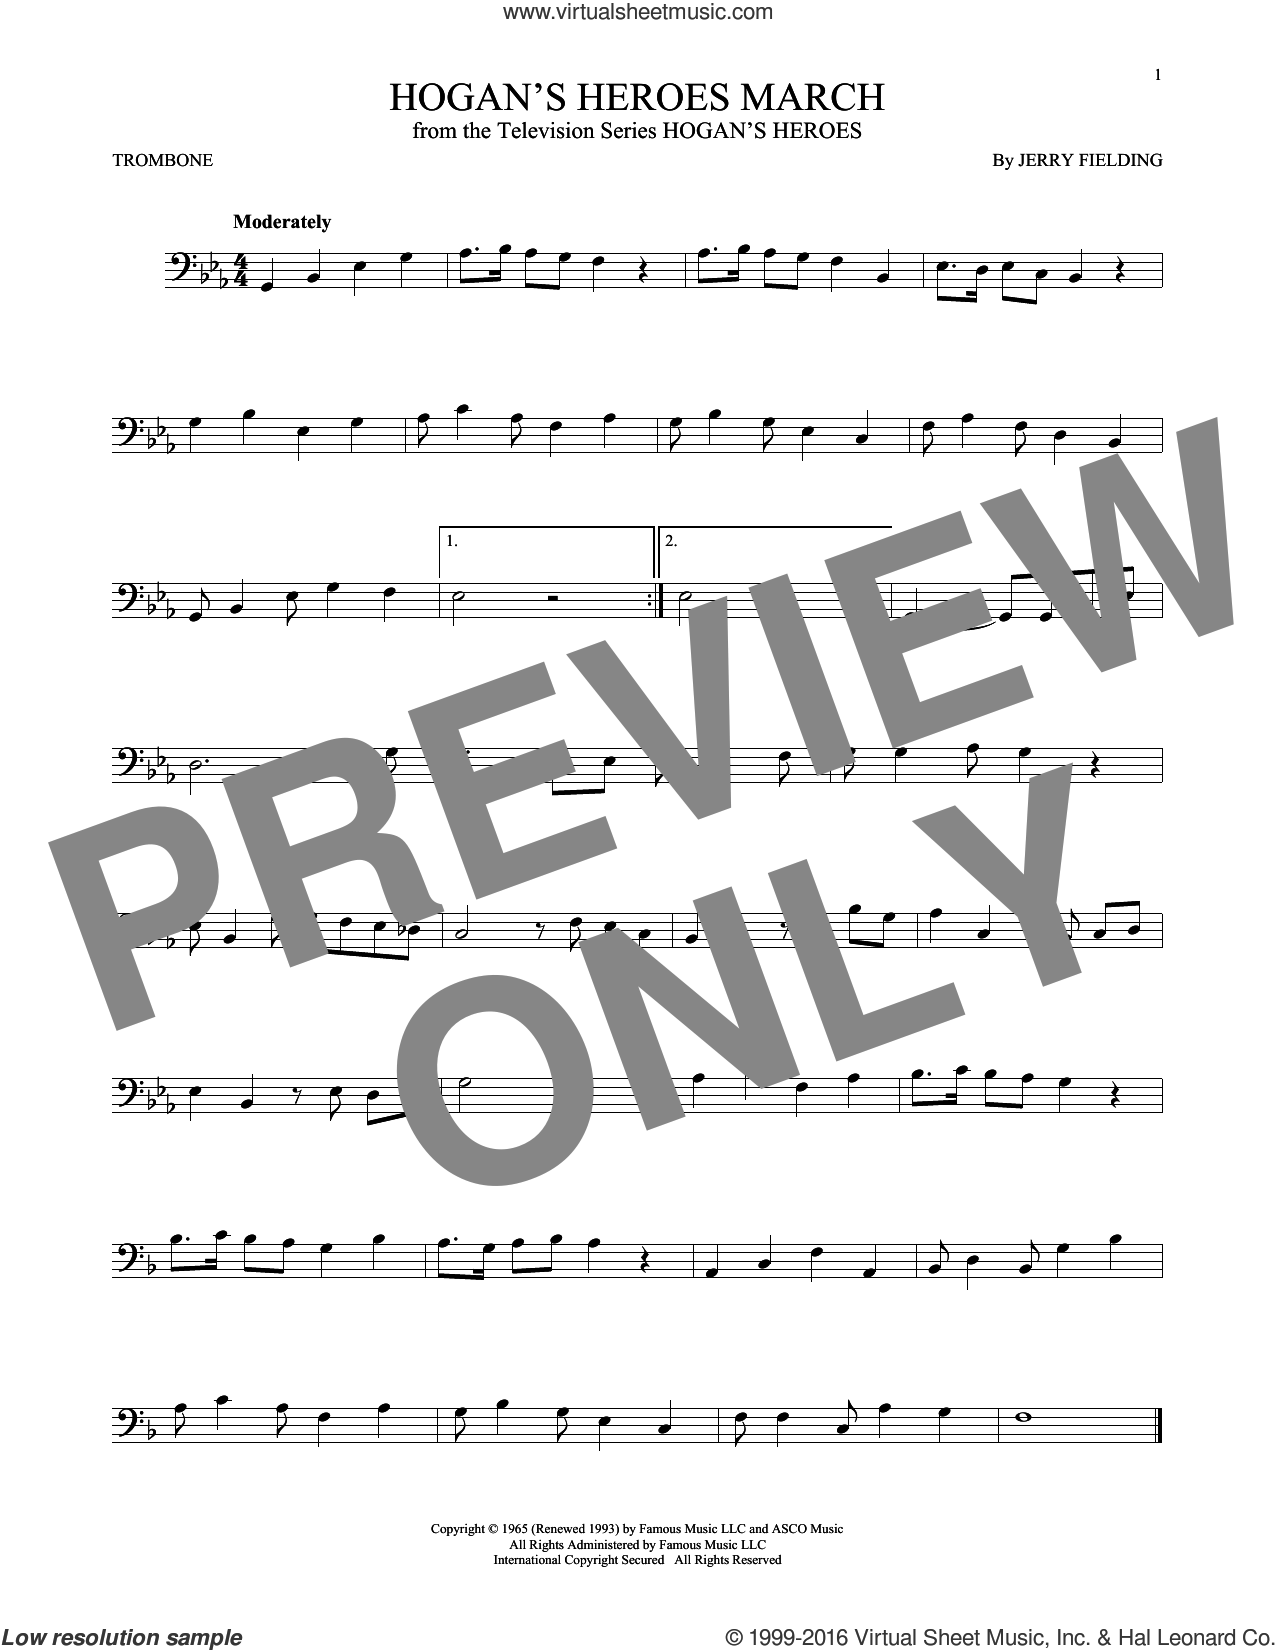 Hogan's Heroes March sheet music for trombone solo by Jerry Fielding. Score Image Preview.